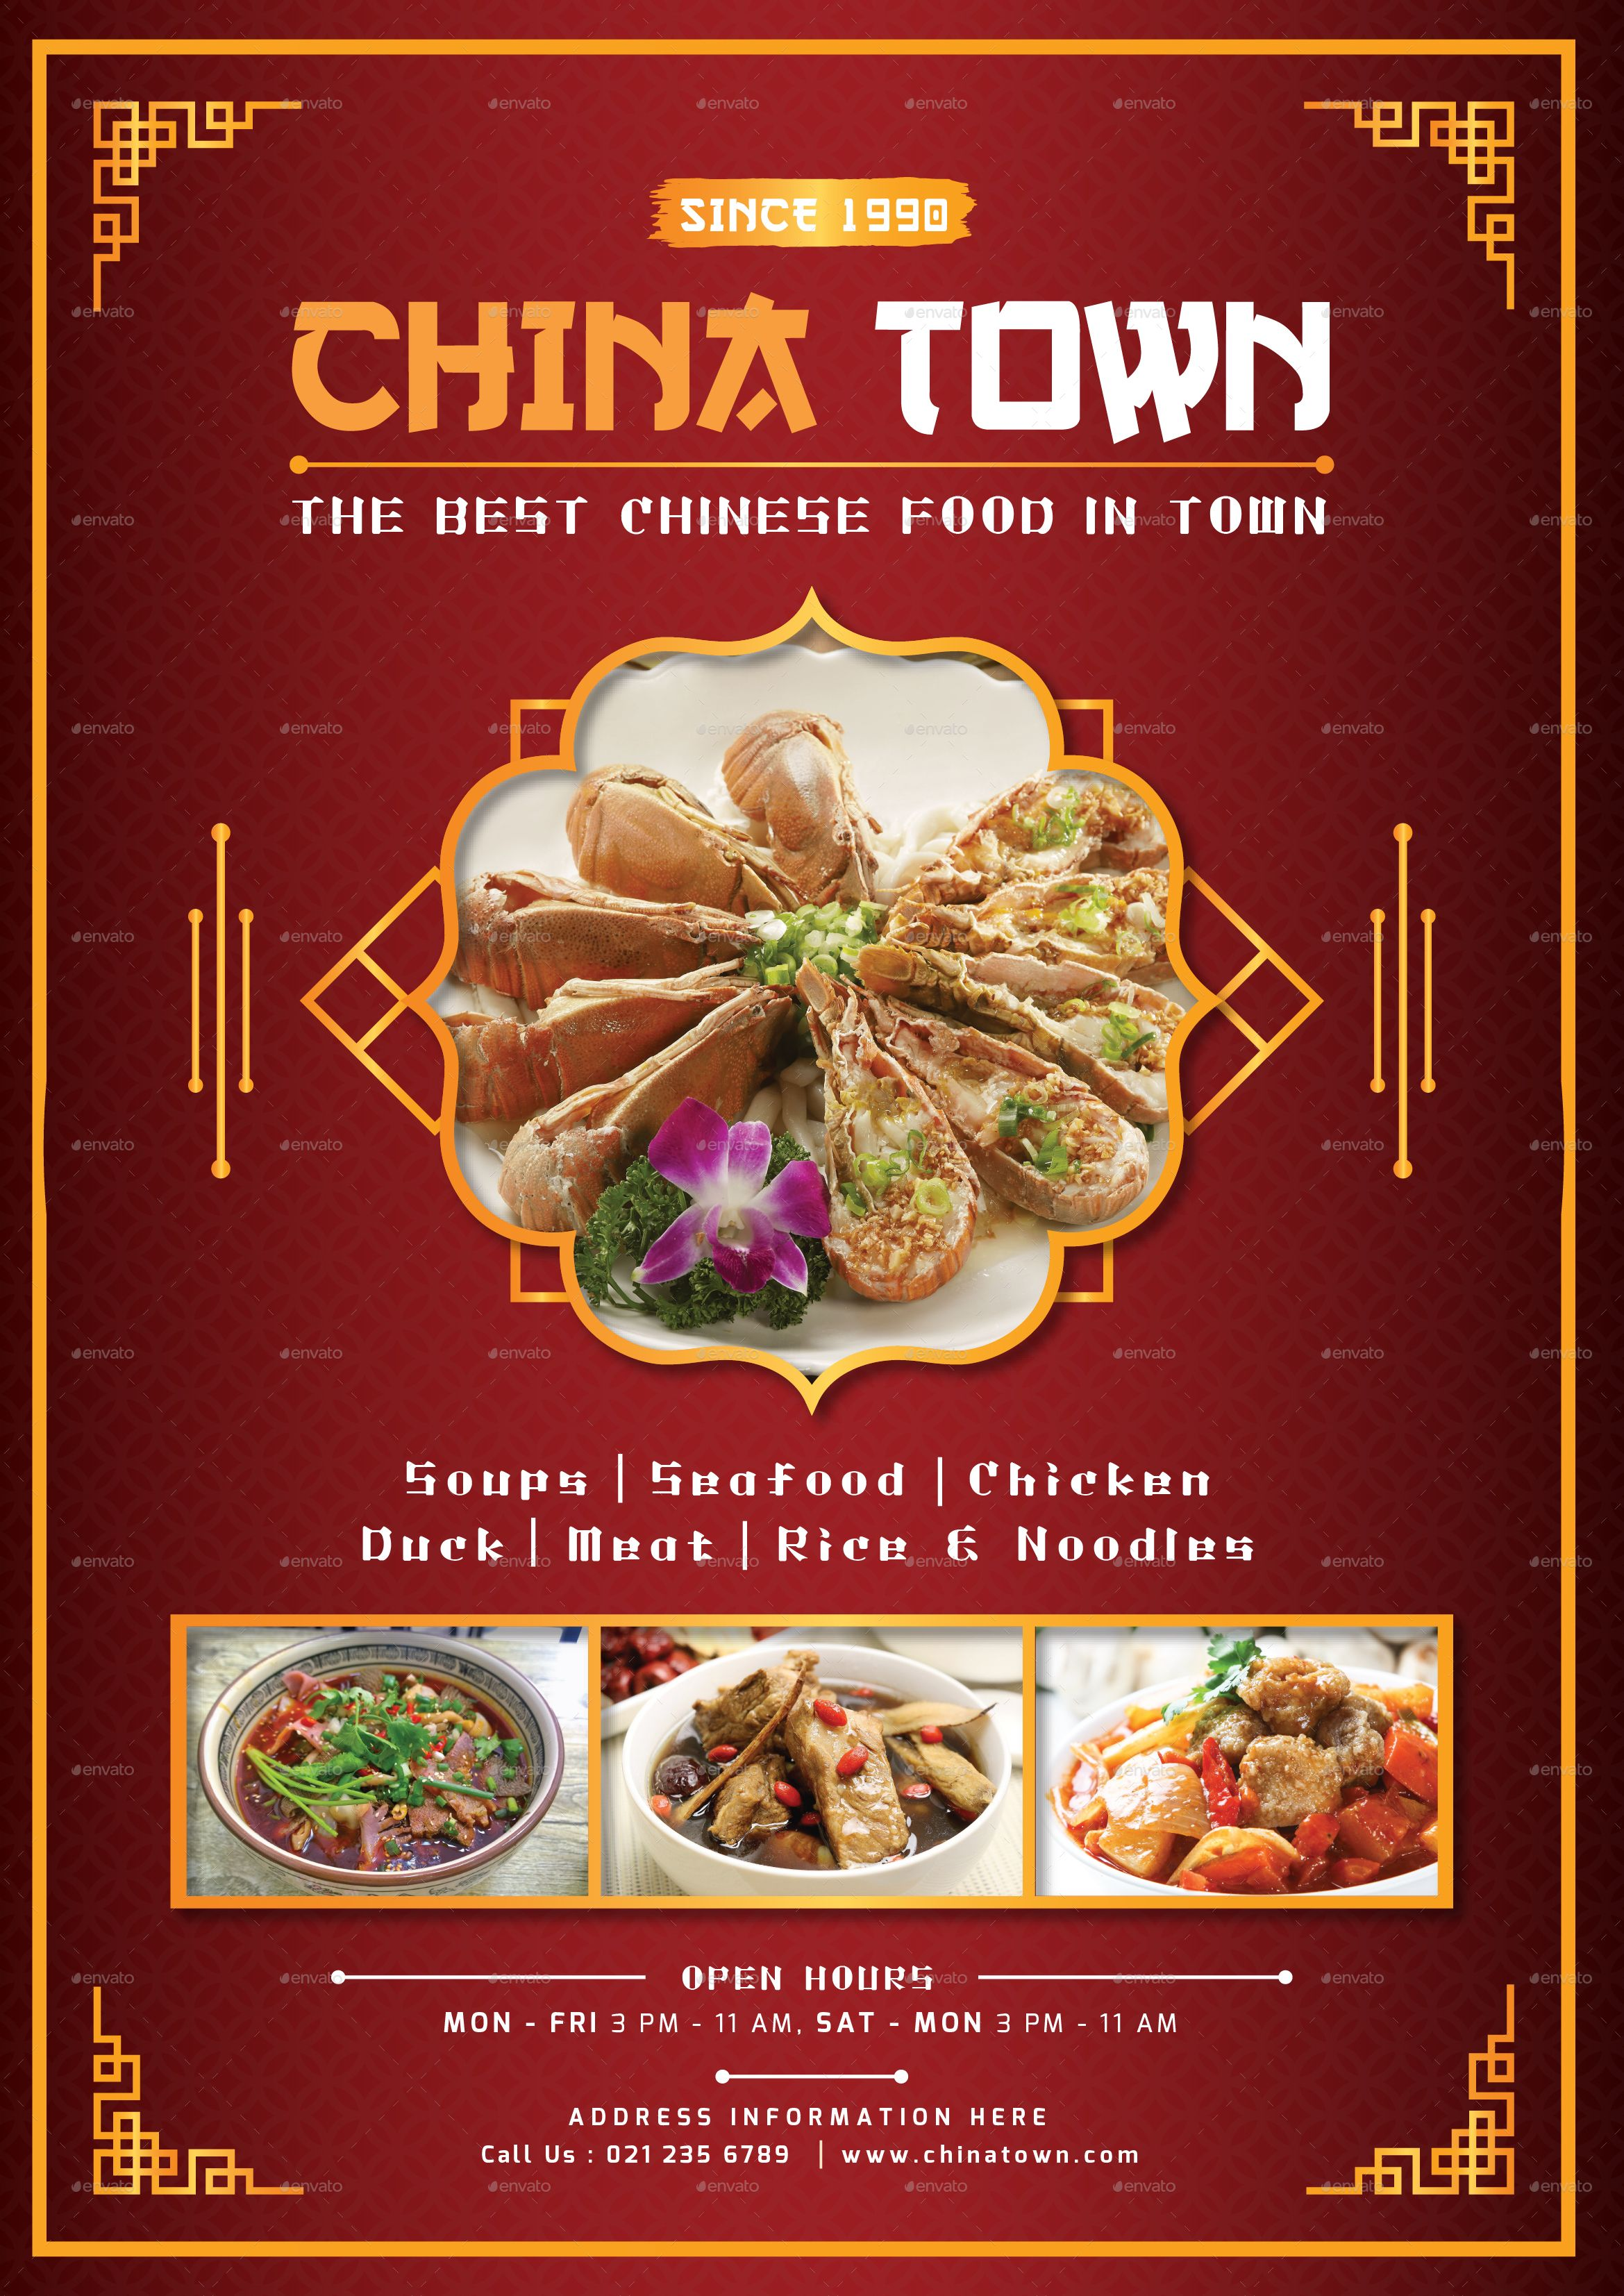 Chinese Food Menu Food Menu Design Chinese Food Menu Chinese Food Restaurant